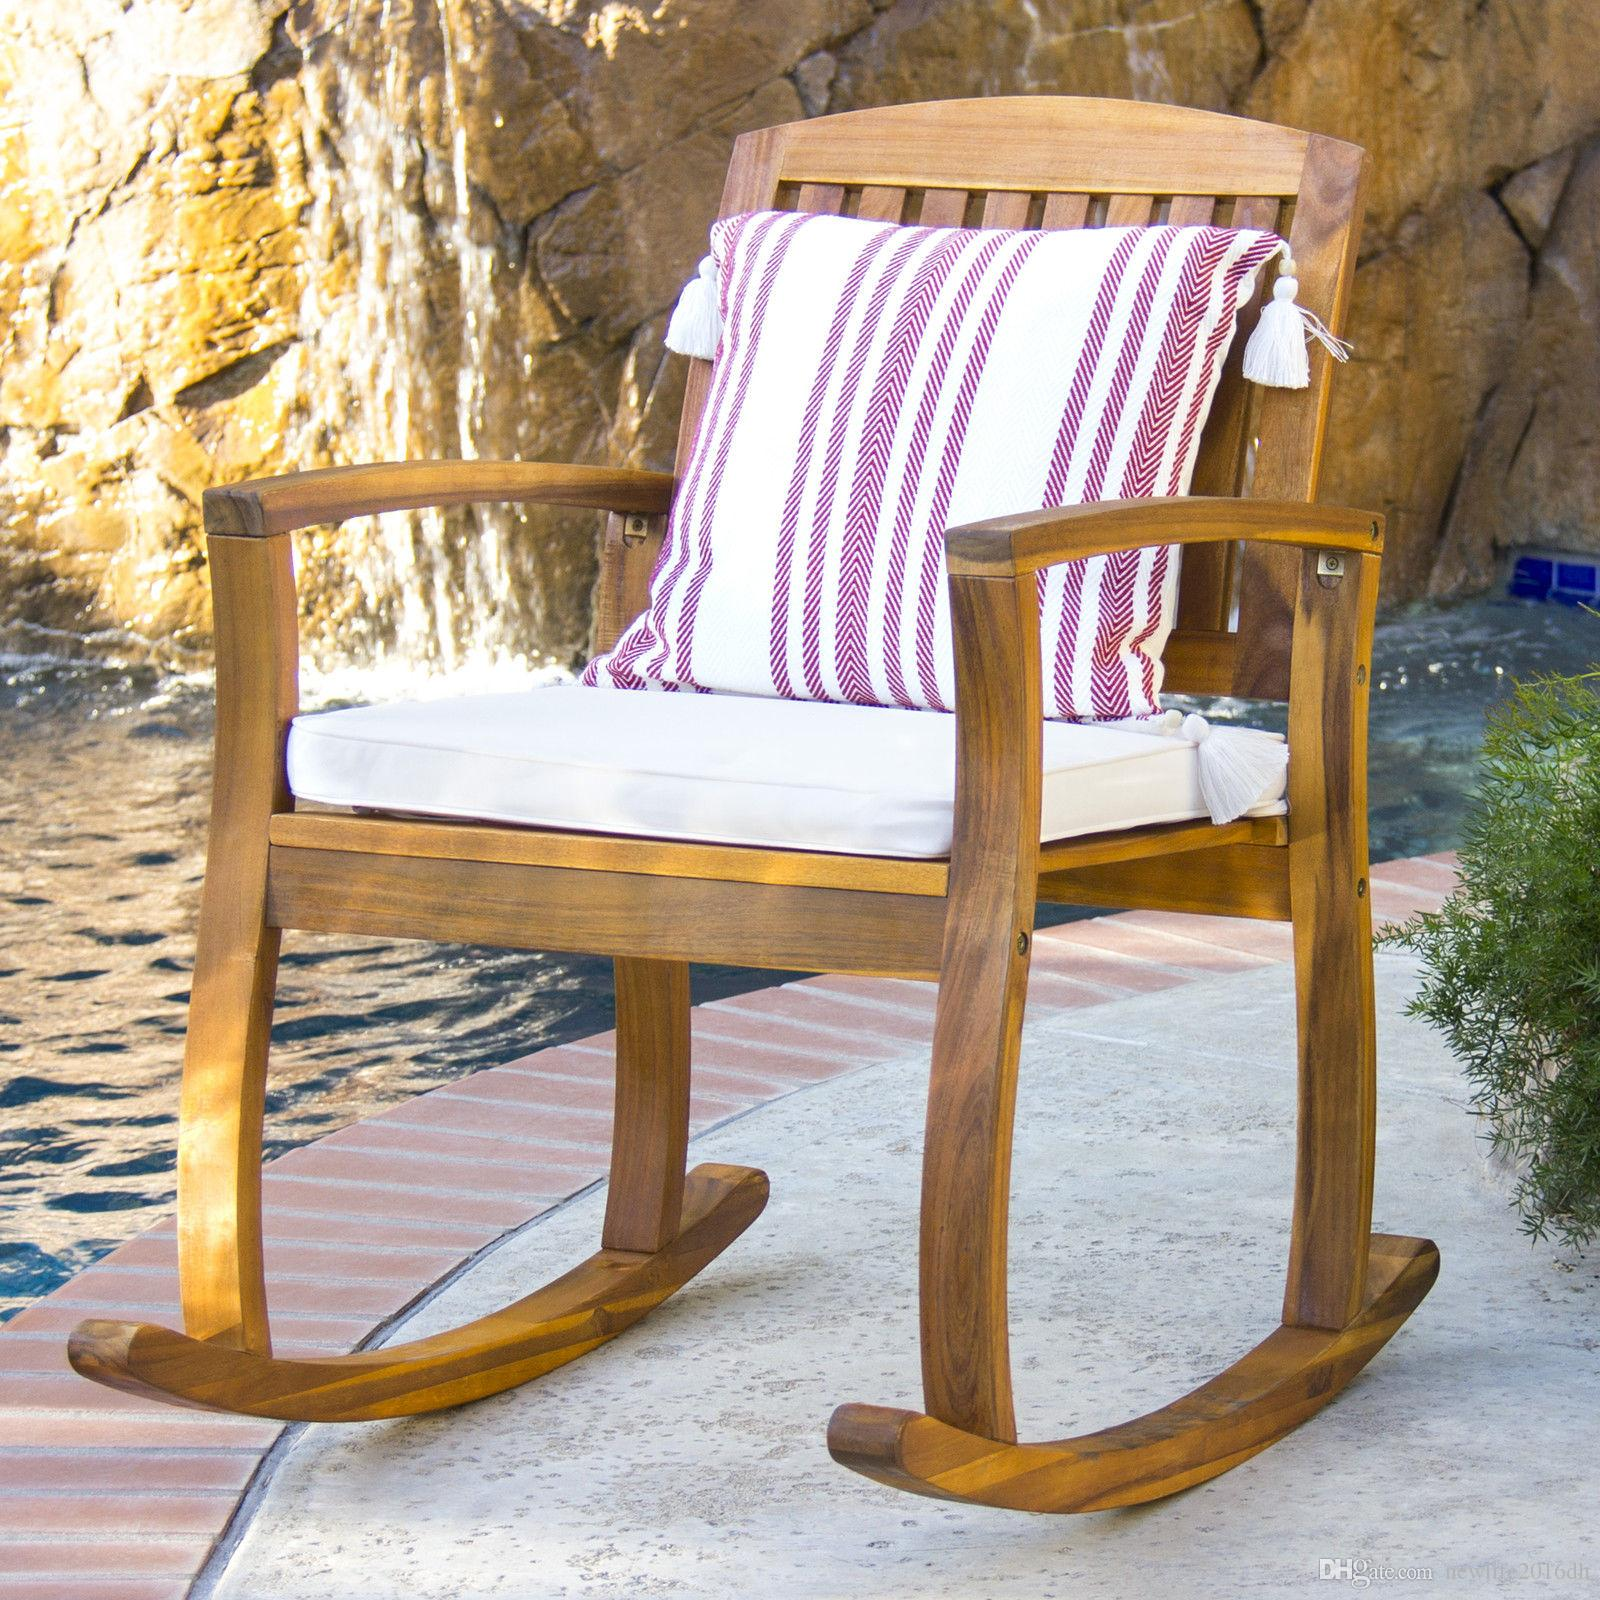 2018 Outdoor Patio Acacia Wood Rocking Chair W/ Removable Seat Cushion From  Newlife2016dh, $75.38 | Dhgate.Com